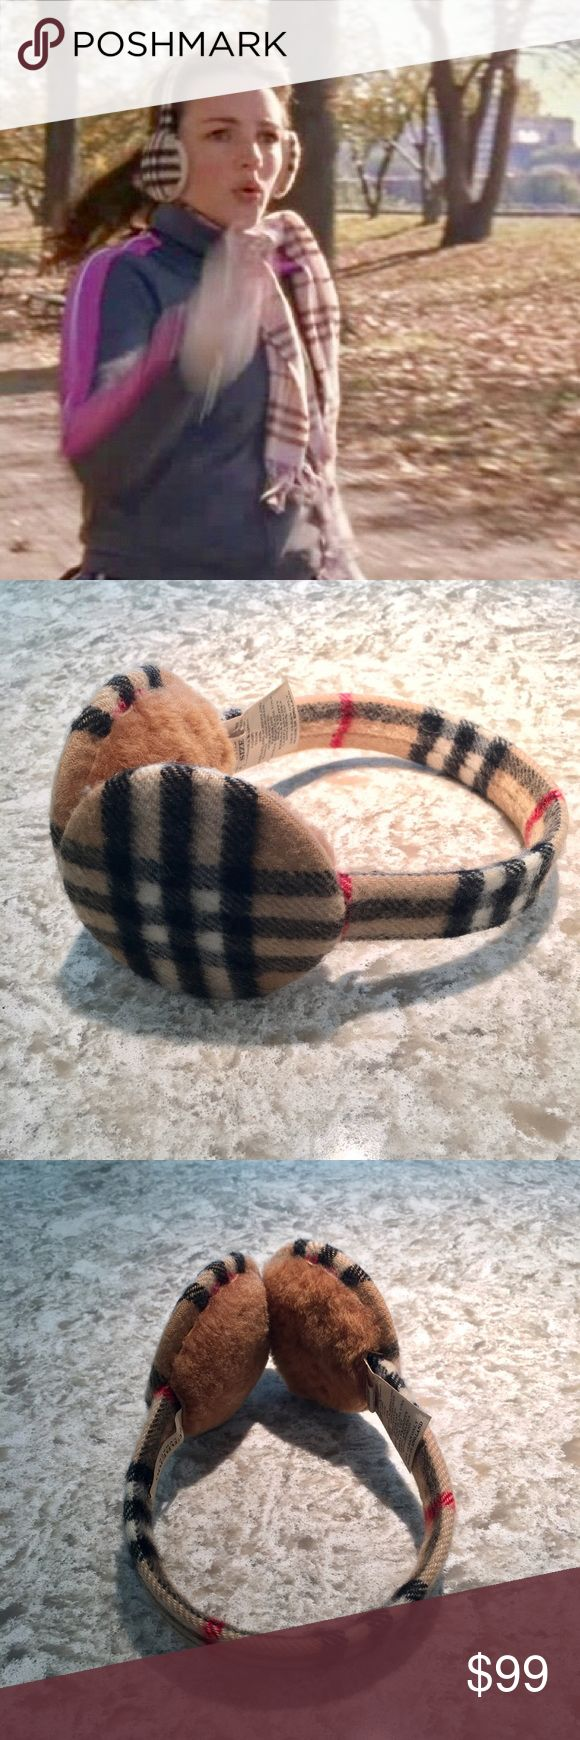 Burberry Nova Check Cashmere/Shearling Earmuffs Burberry earmuffs in camel color nova check. As sported by Charlotte York, will definitely keeps your ears toasty! Made of cashmere and shearling. Spectacular condition. Smoke free, pet free. No trades. Burberry Accessories Gloves & Mittens